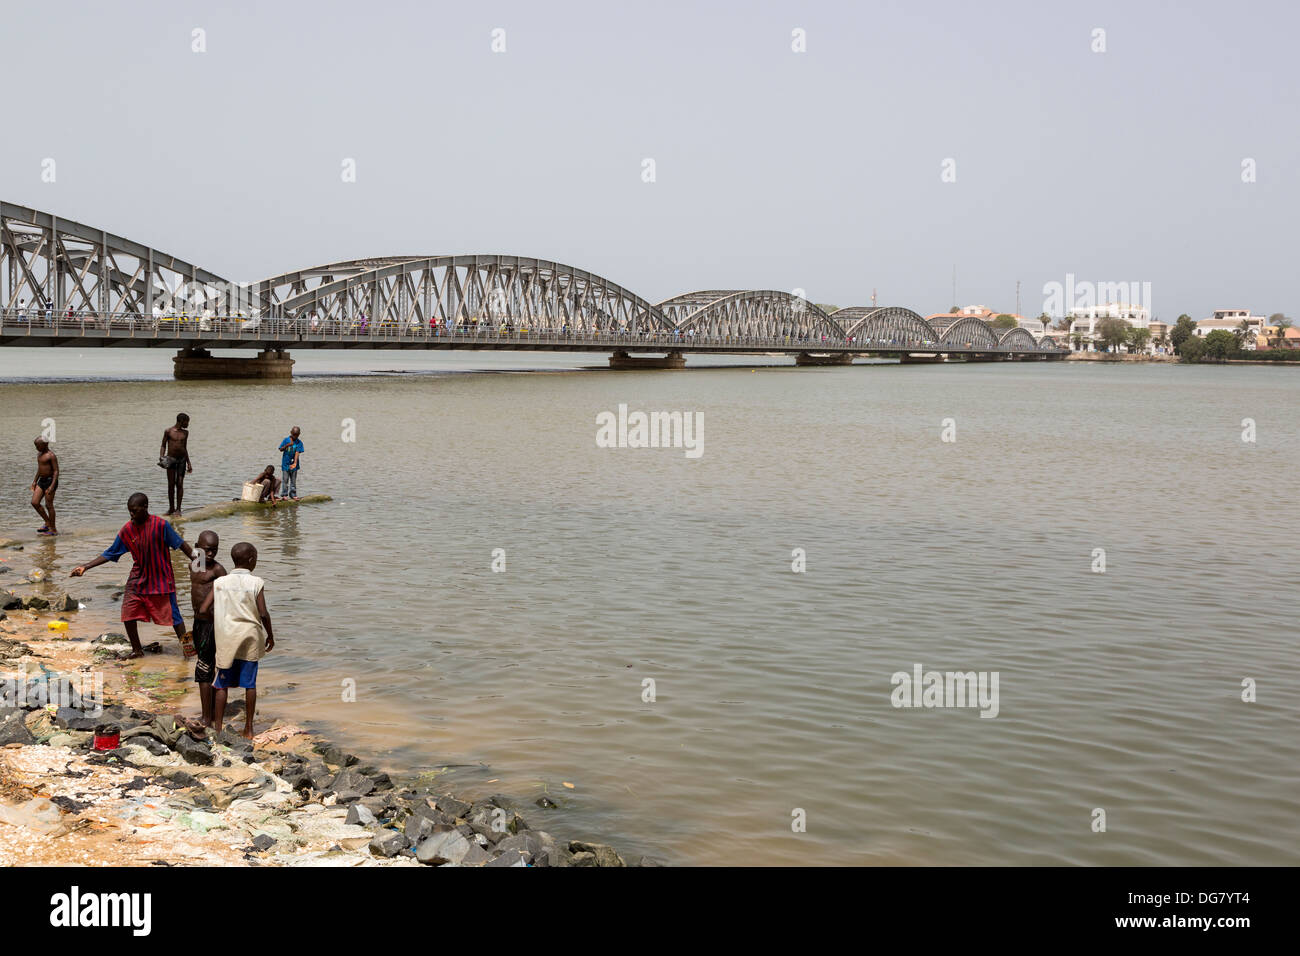 Senegal, Saint Louis. Pont Faidherbe Bridge over the River Senegal, Built 1897. - Stock Image